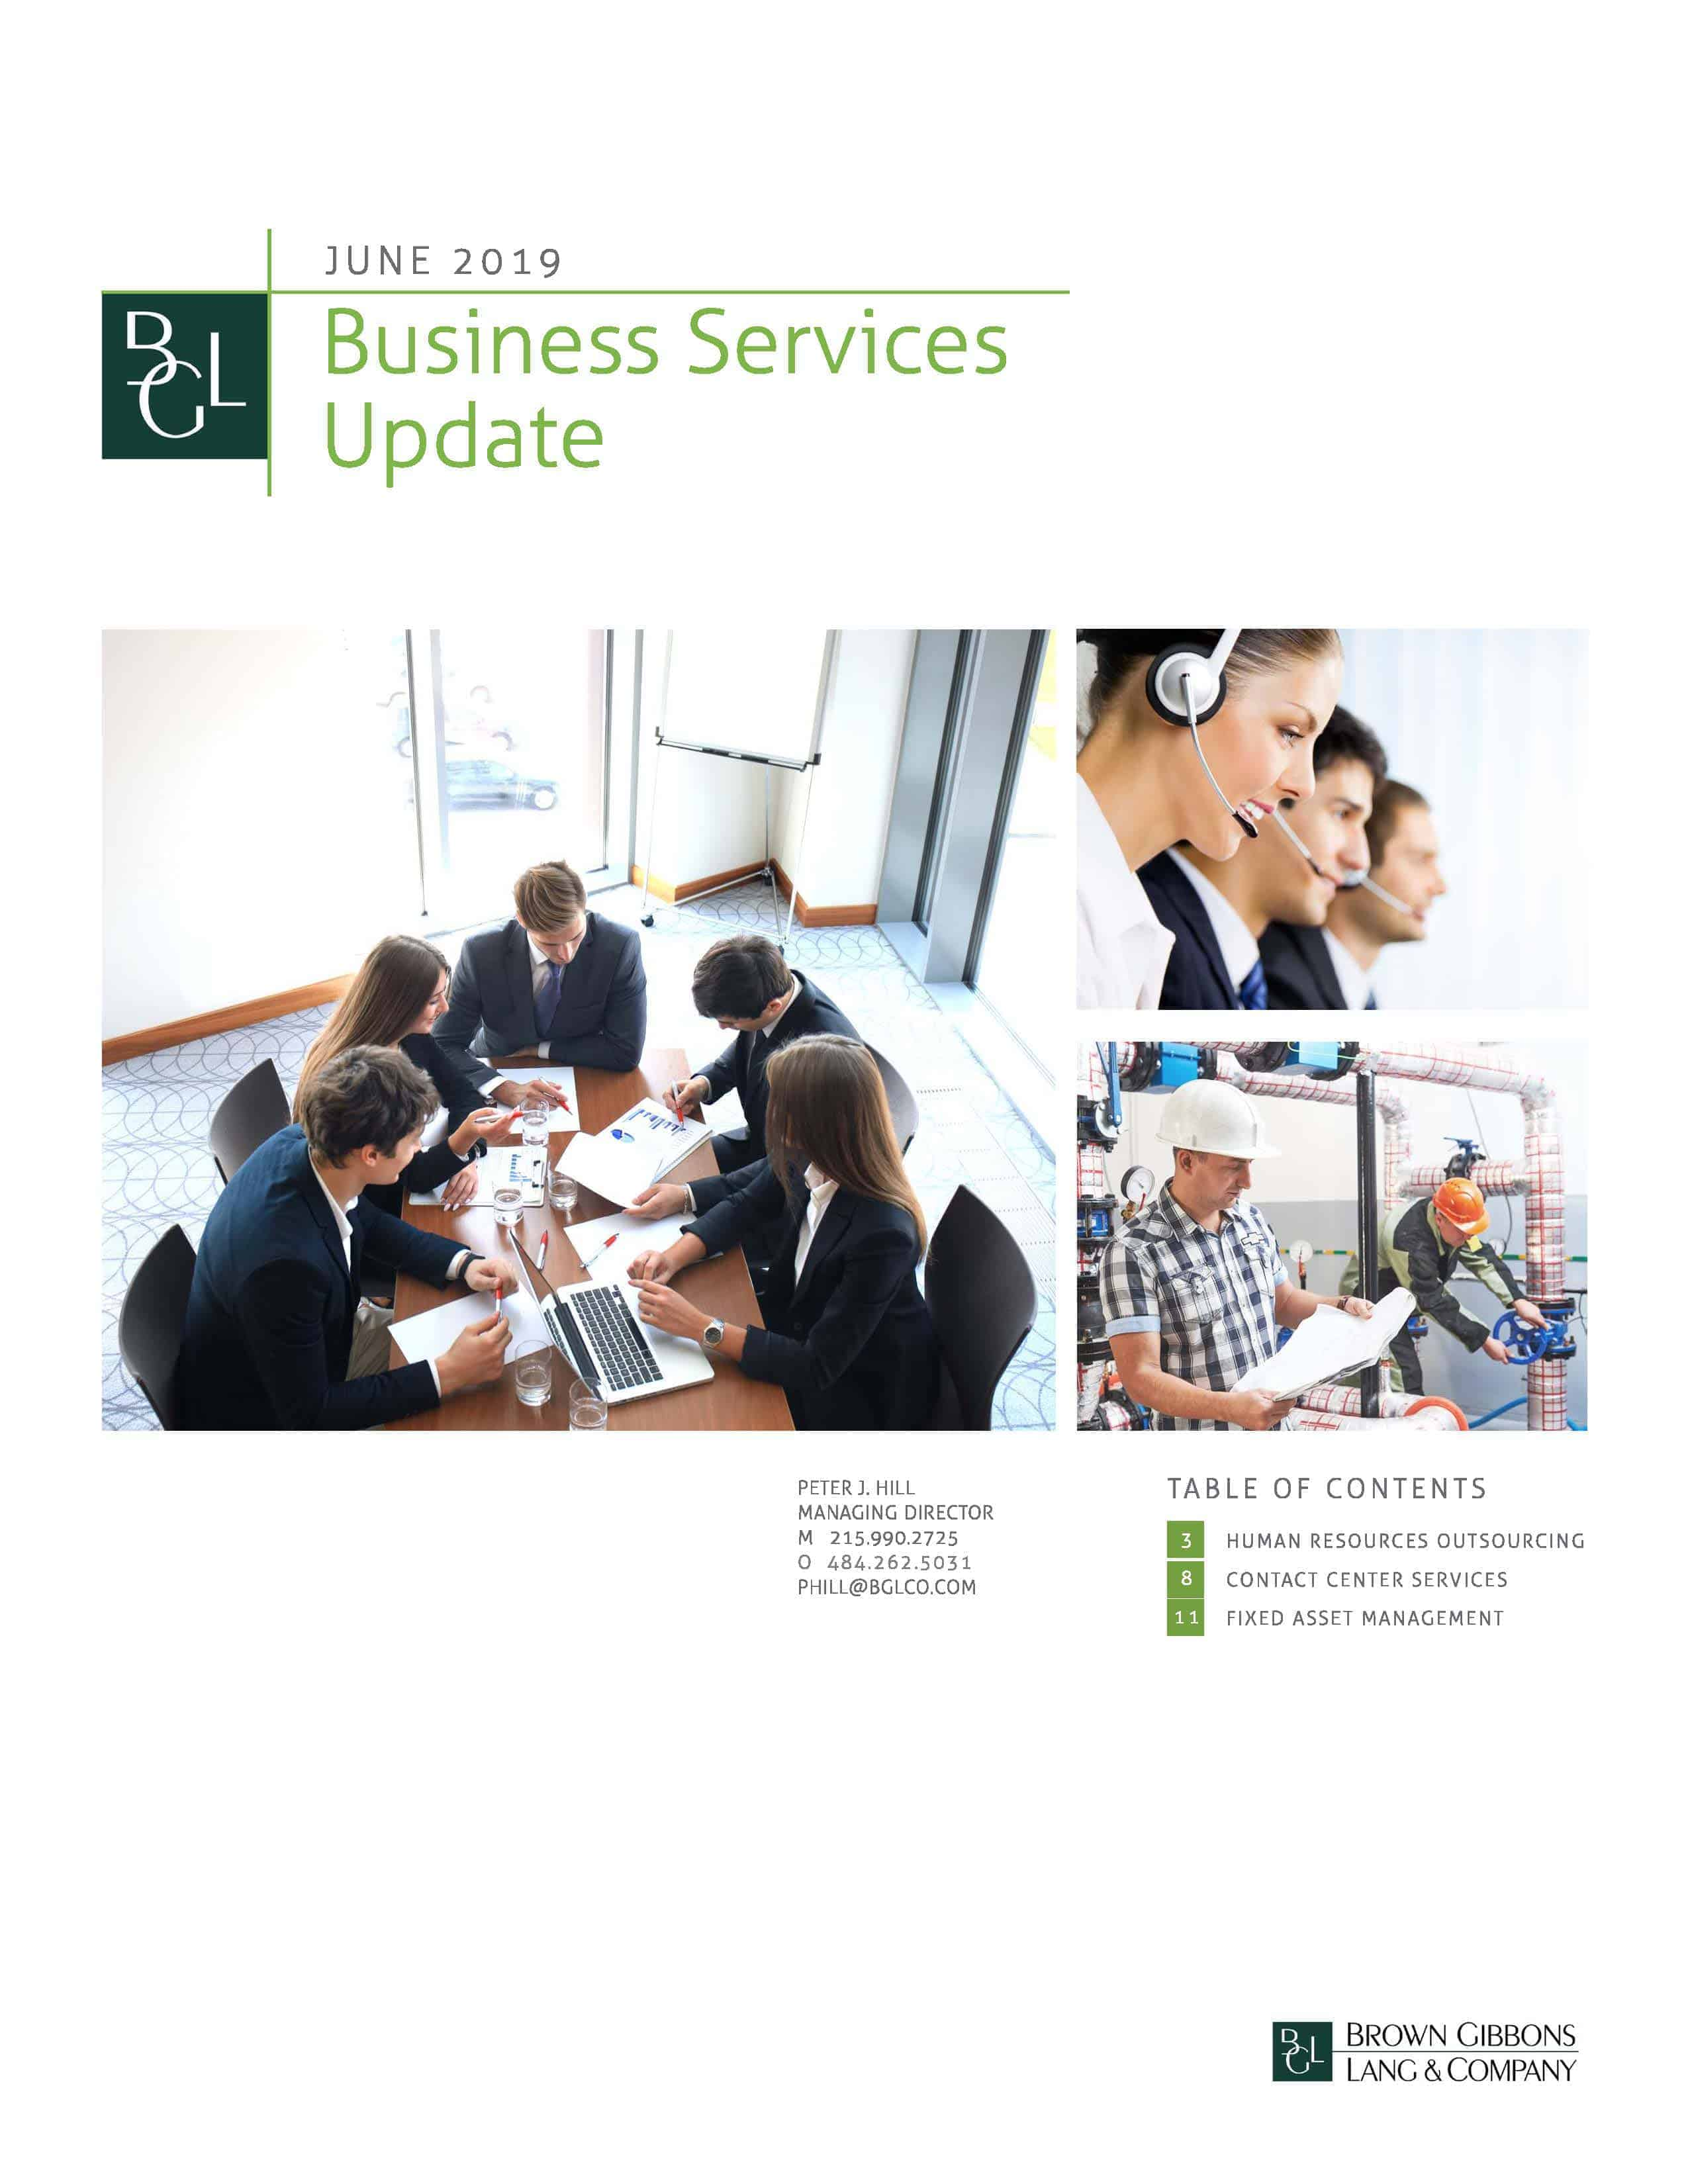 Image for BGL Business Services Update – June 2019 Research